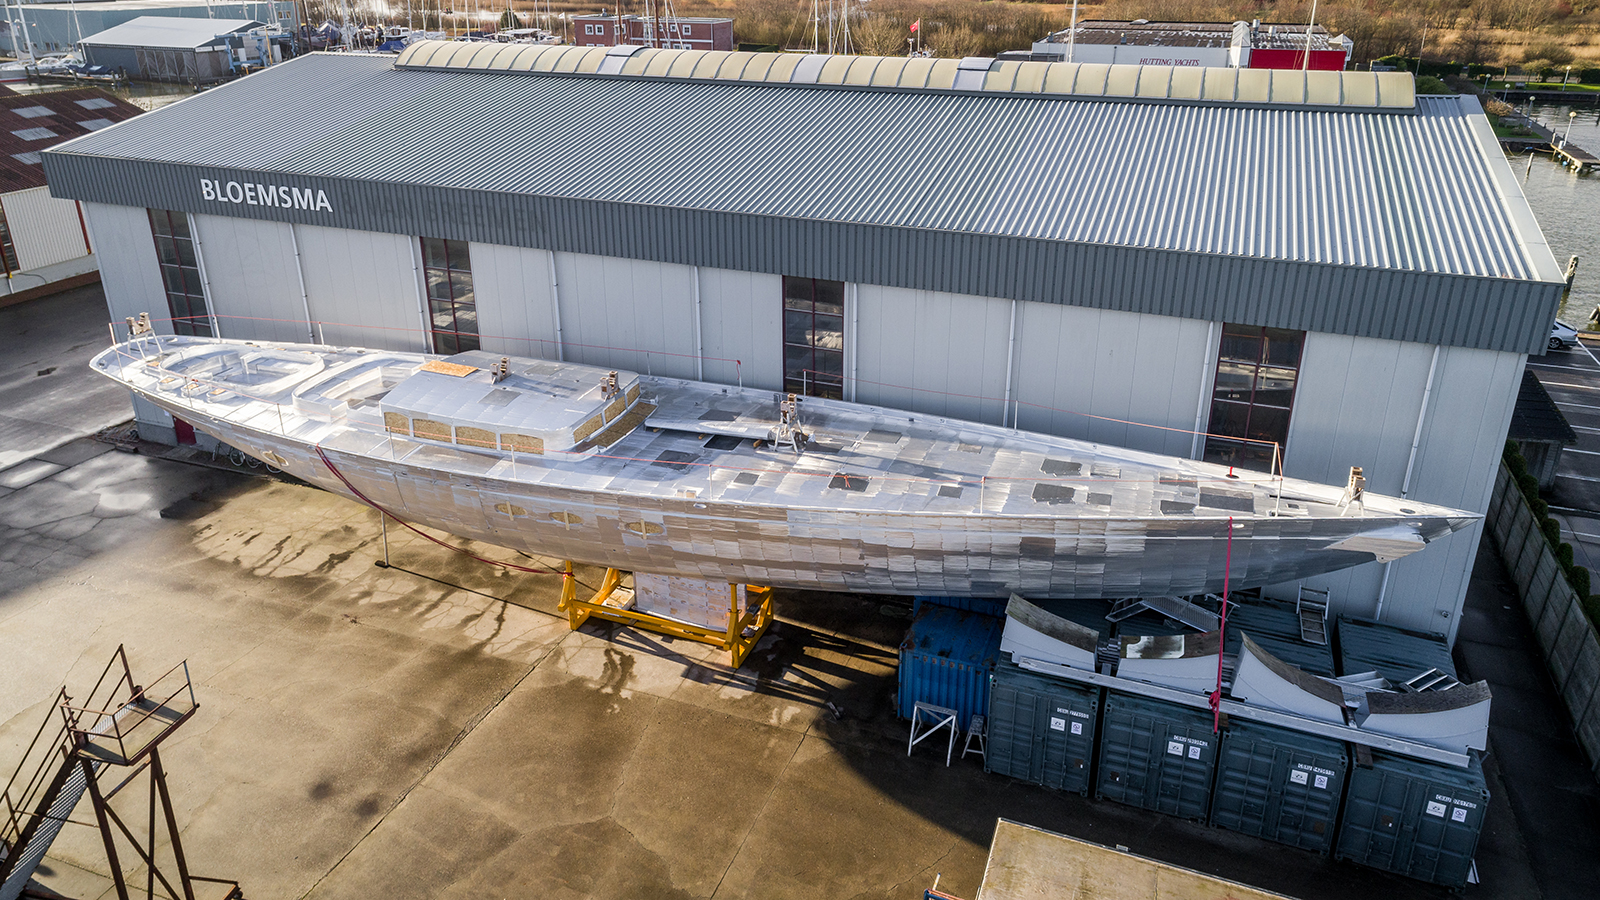 aerial-view-of-the-third-hoek-design-truly-classic-127-sailing-yacht